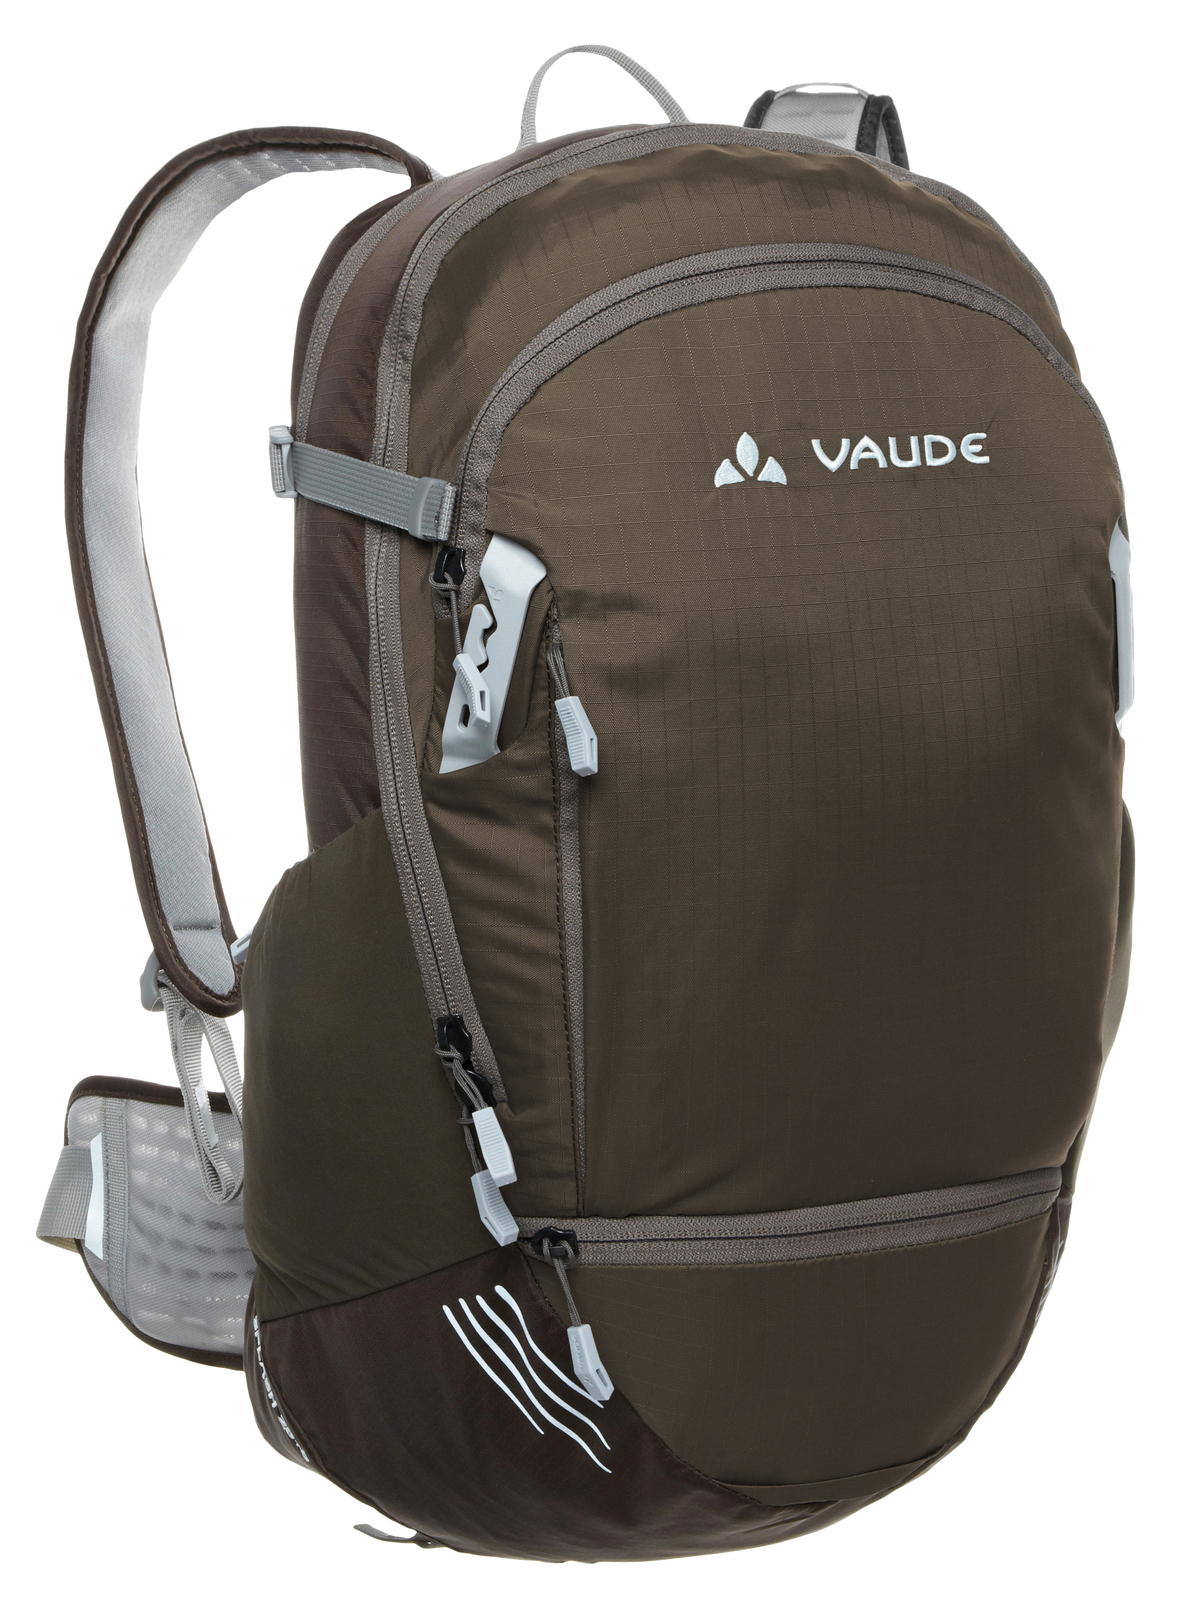 VAUDE Splash 20+5 coconut  - VAUDE Splash 20+5 coconut